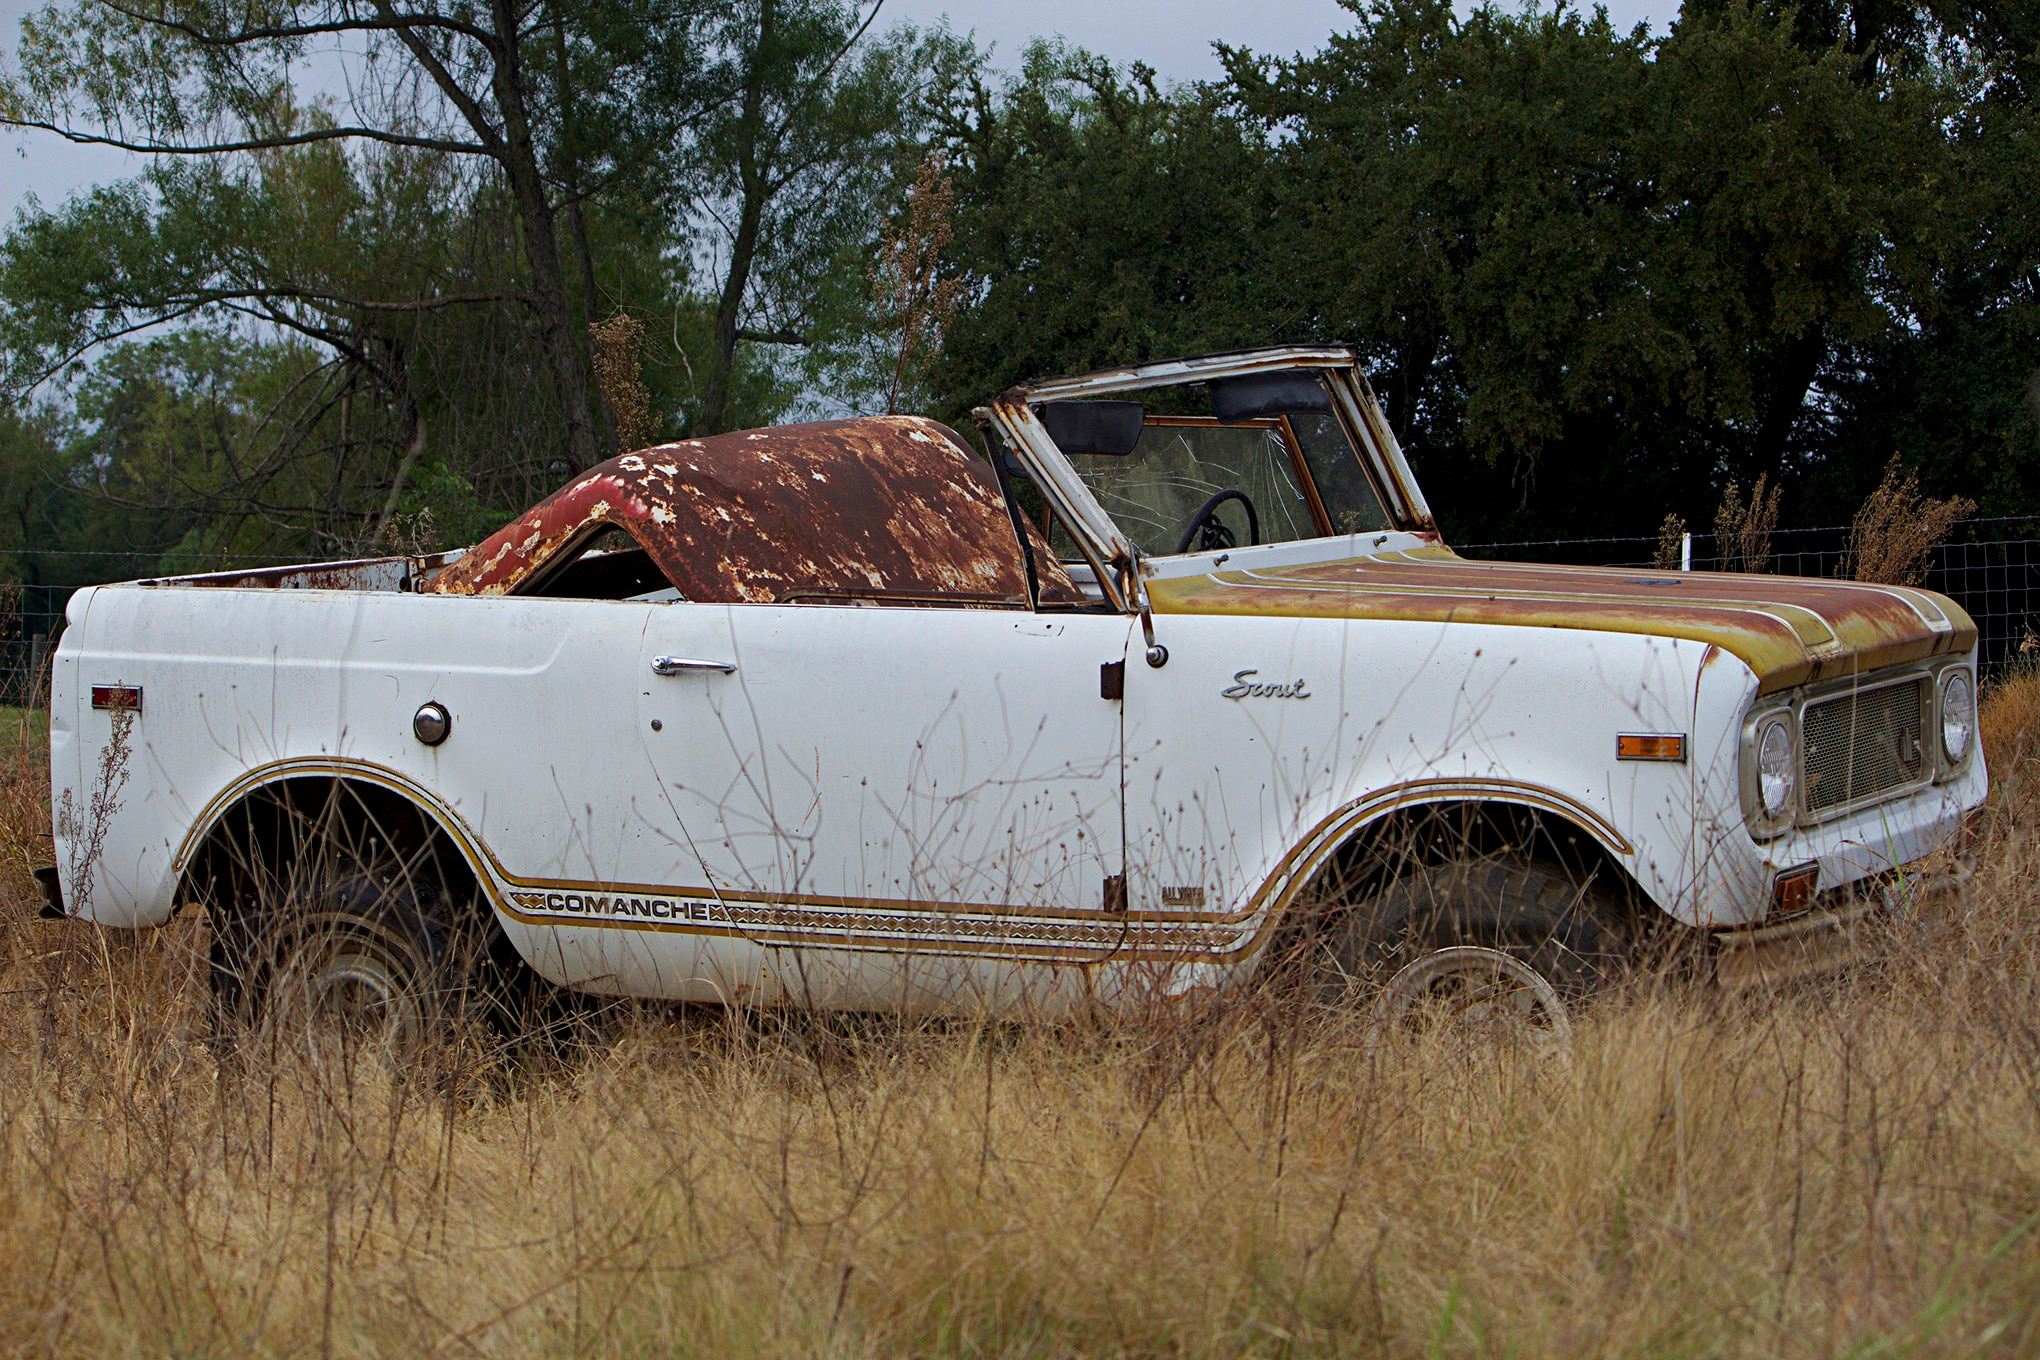 hight resolution of  the best side of the 71 international scout comanche only hints at the abuse and